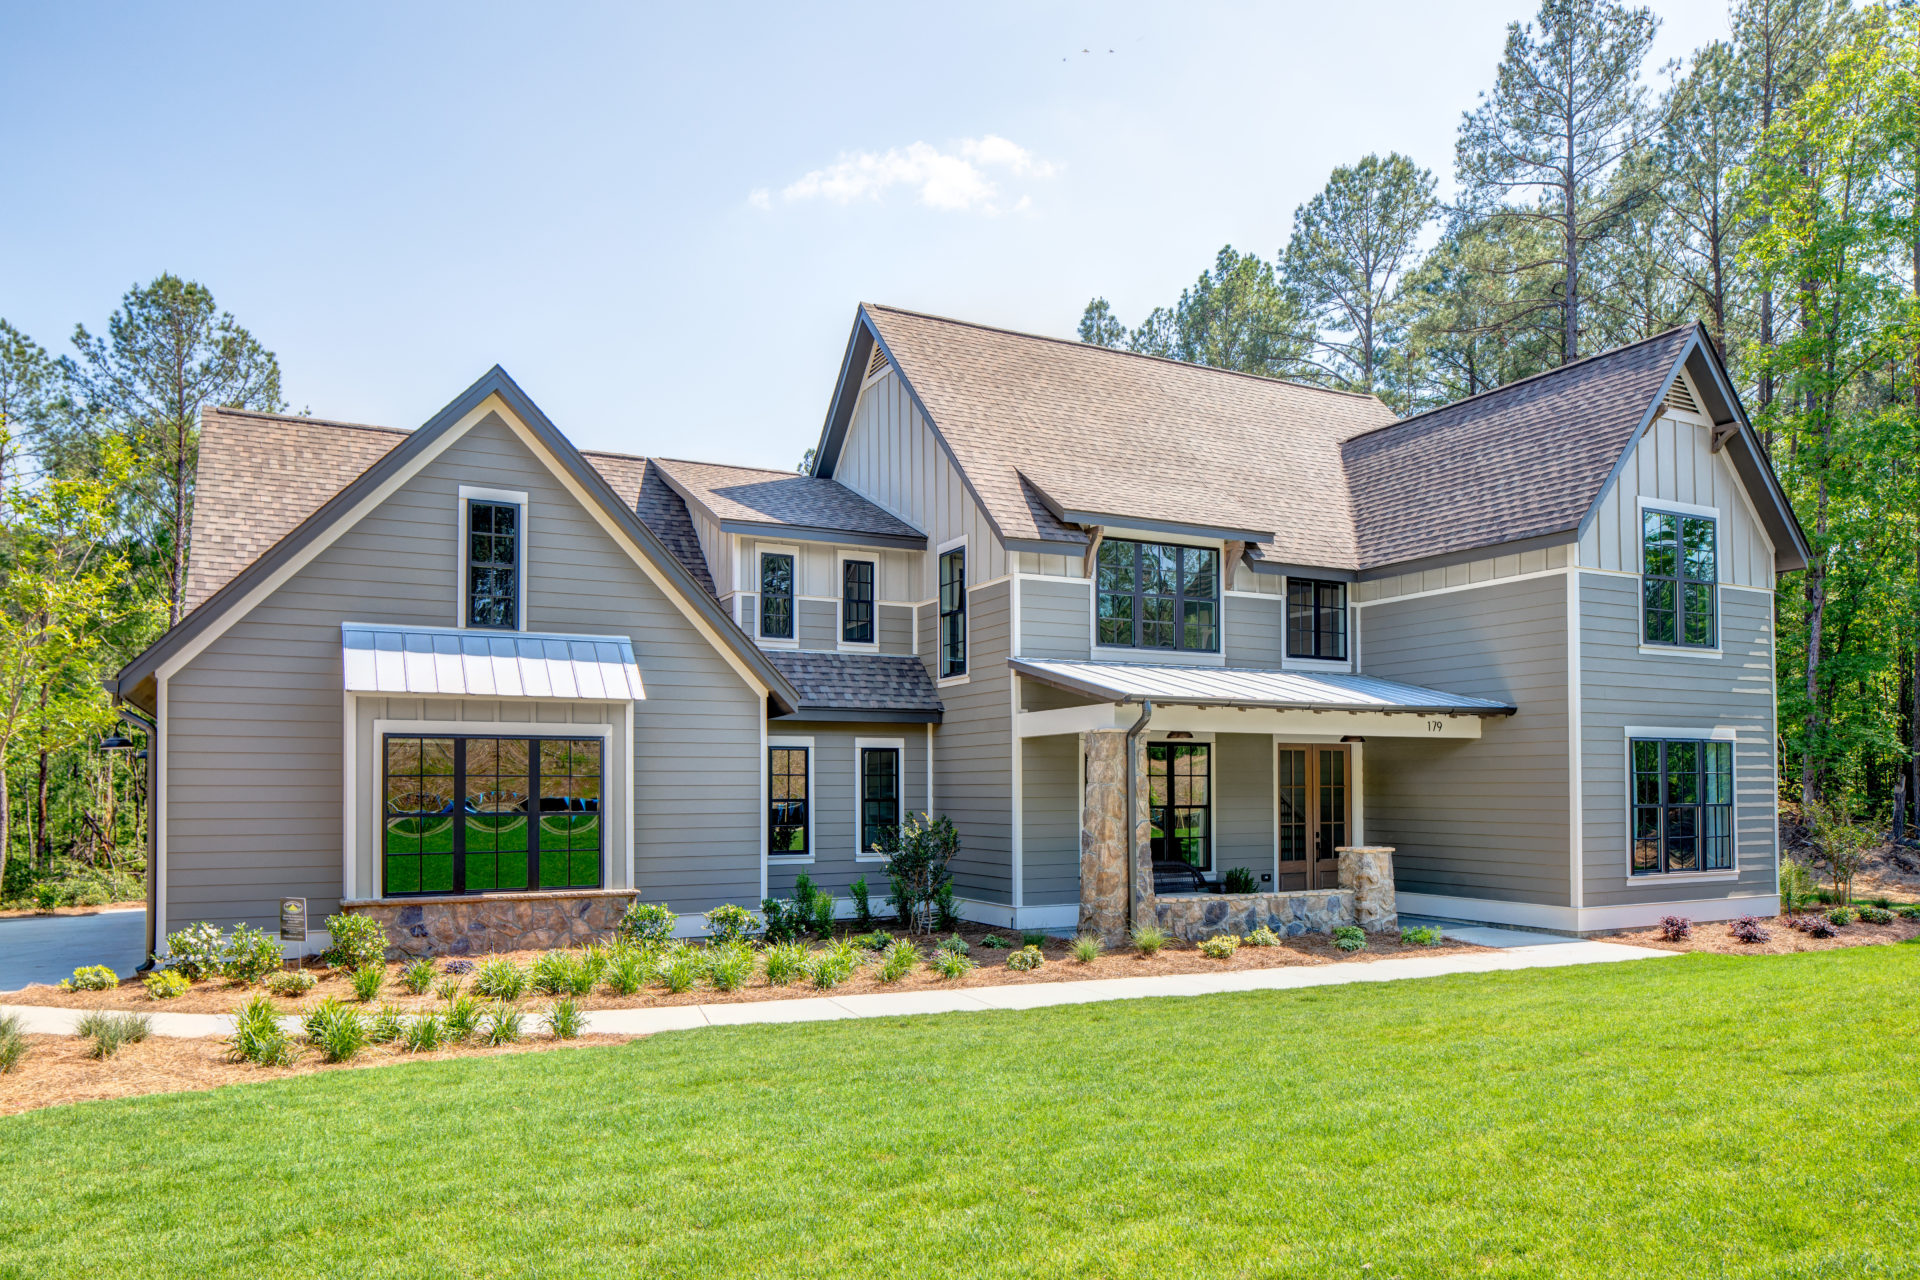 custom alabama home exterior